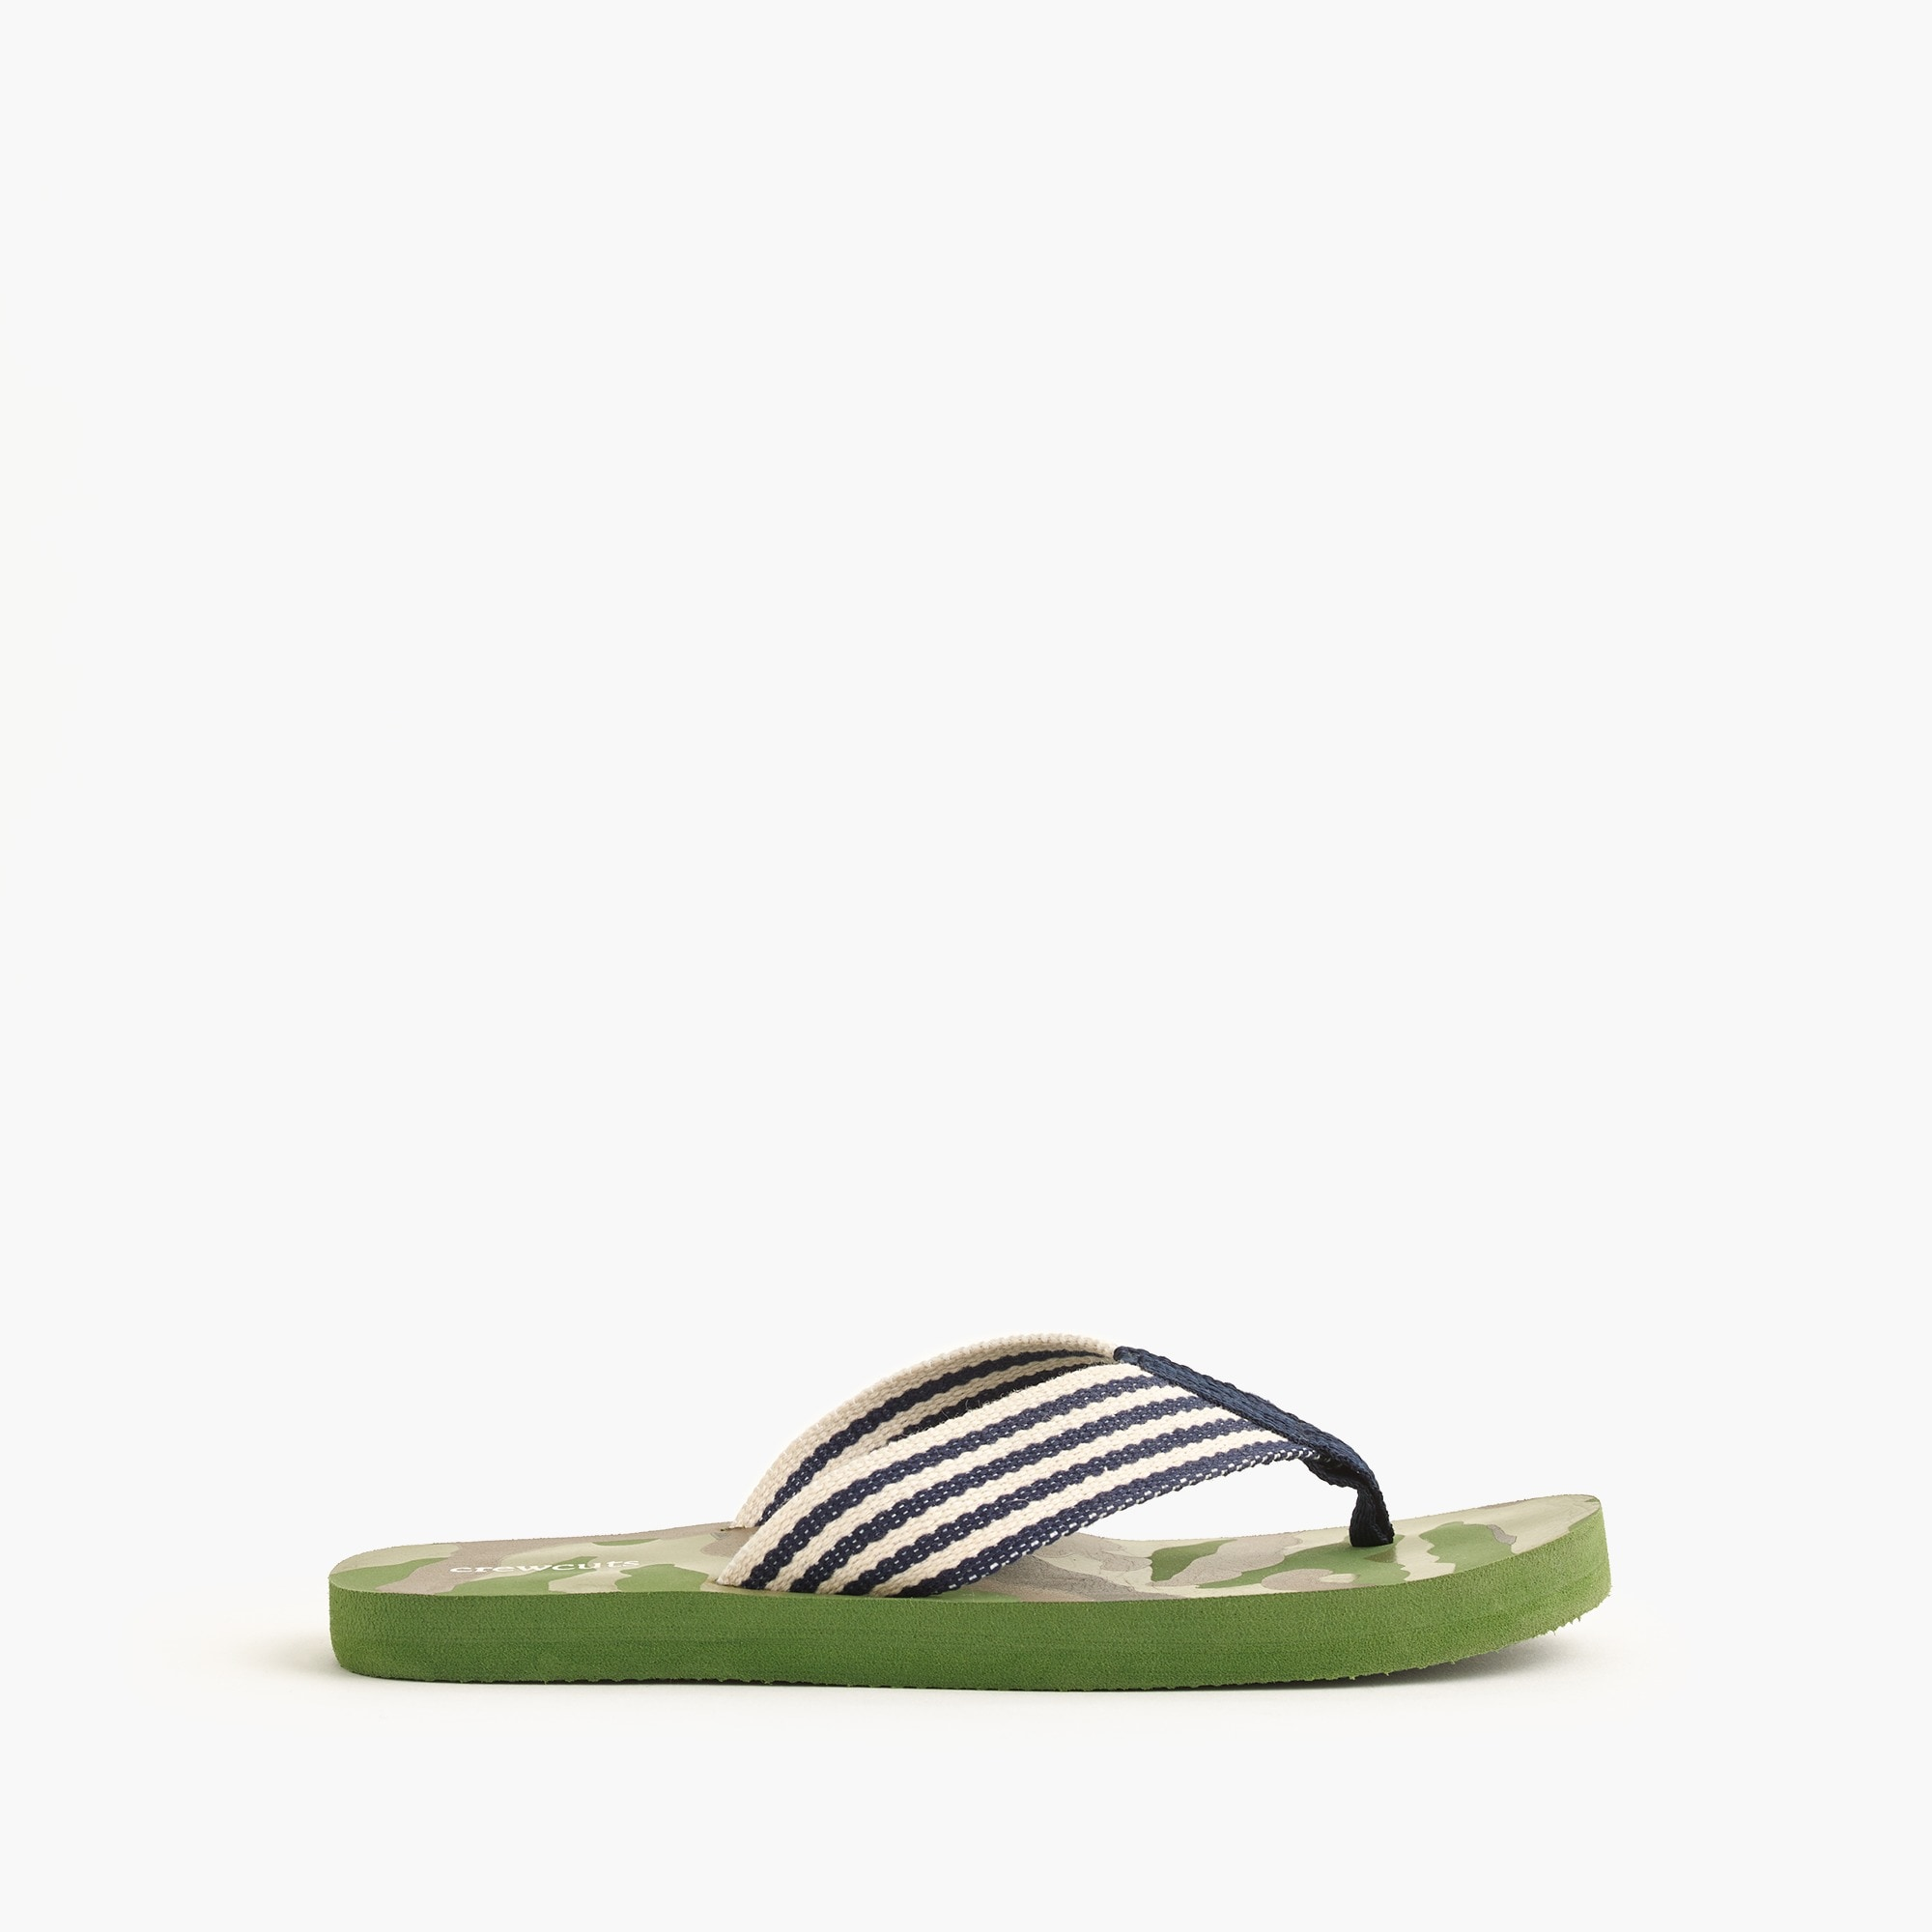 Image 2 for Boys' flip-flops in camo